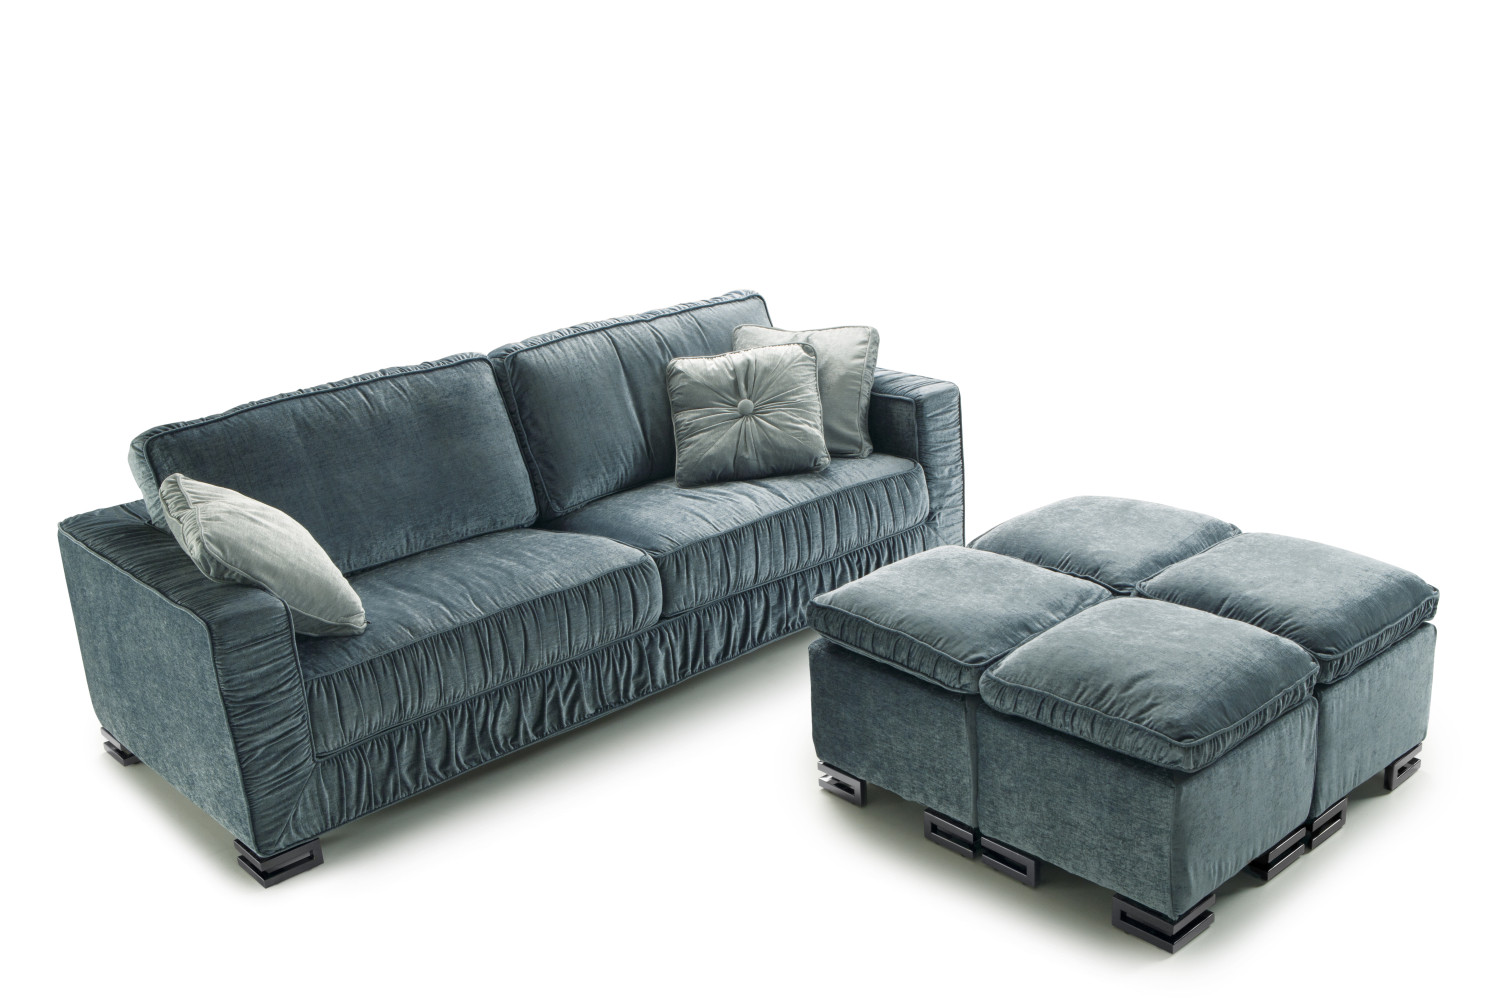 Garrison Sofa With Ruched Cover